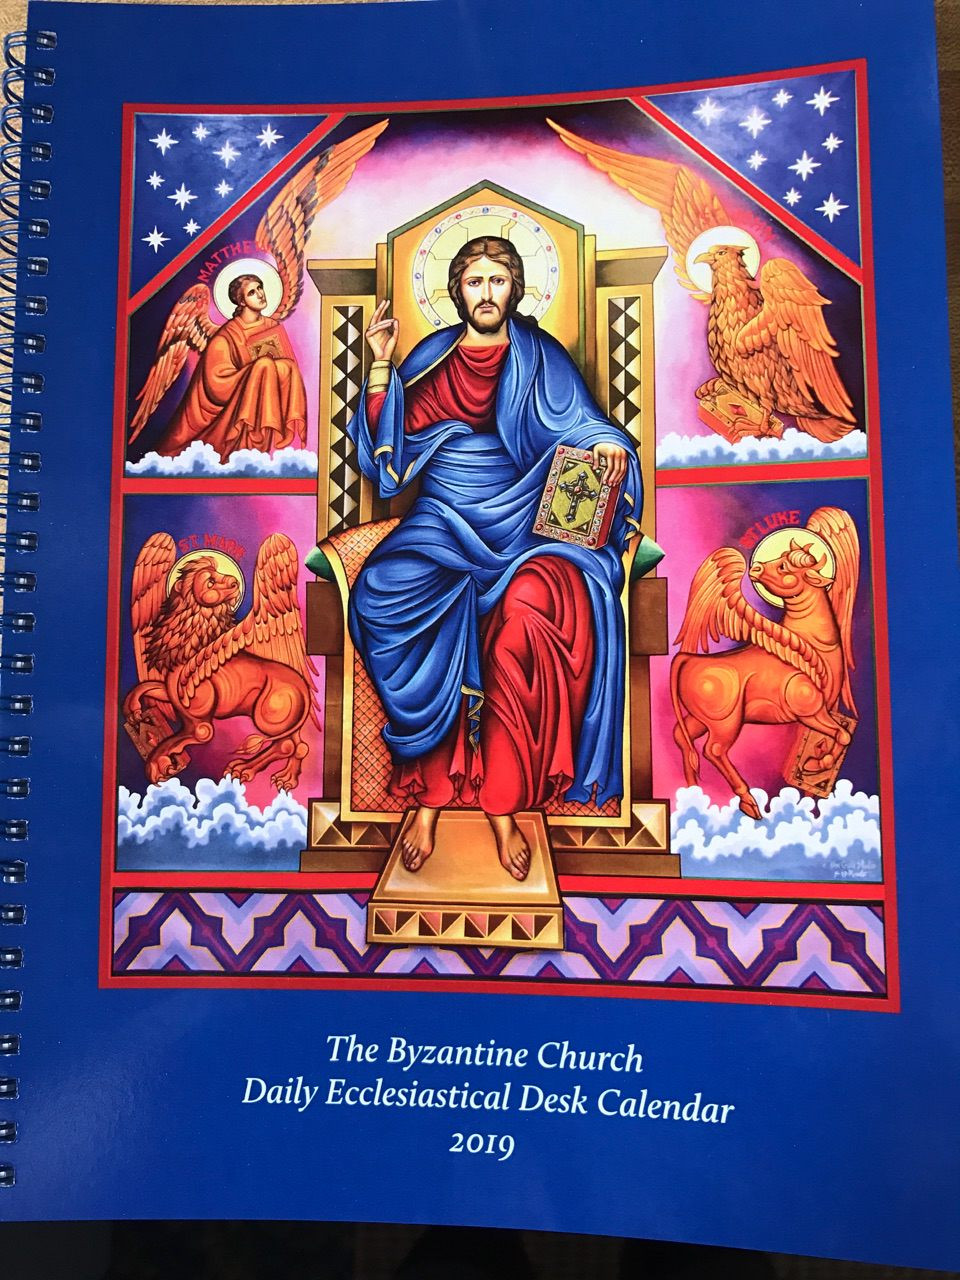 calendar the byzantine church daily ecclesiastical desk calendar 2019